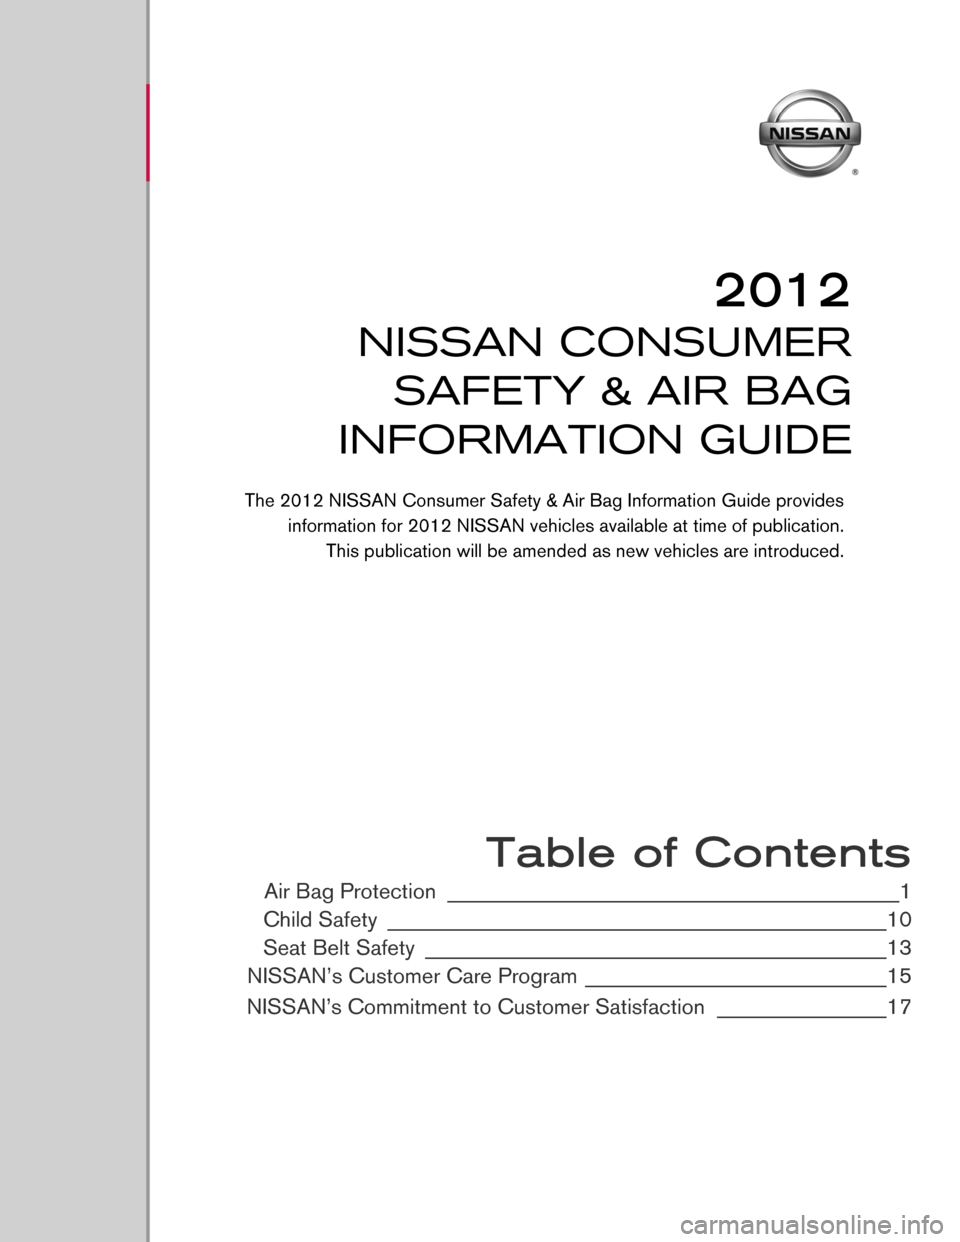 NISSAN ARMADA 2012 1.G Consumer Safety Air Bag Information Guide                                                Table of Contents Air Bag Protection ________________________________________________1 Child Safety  ____________________________________________________